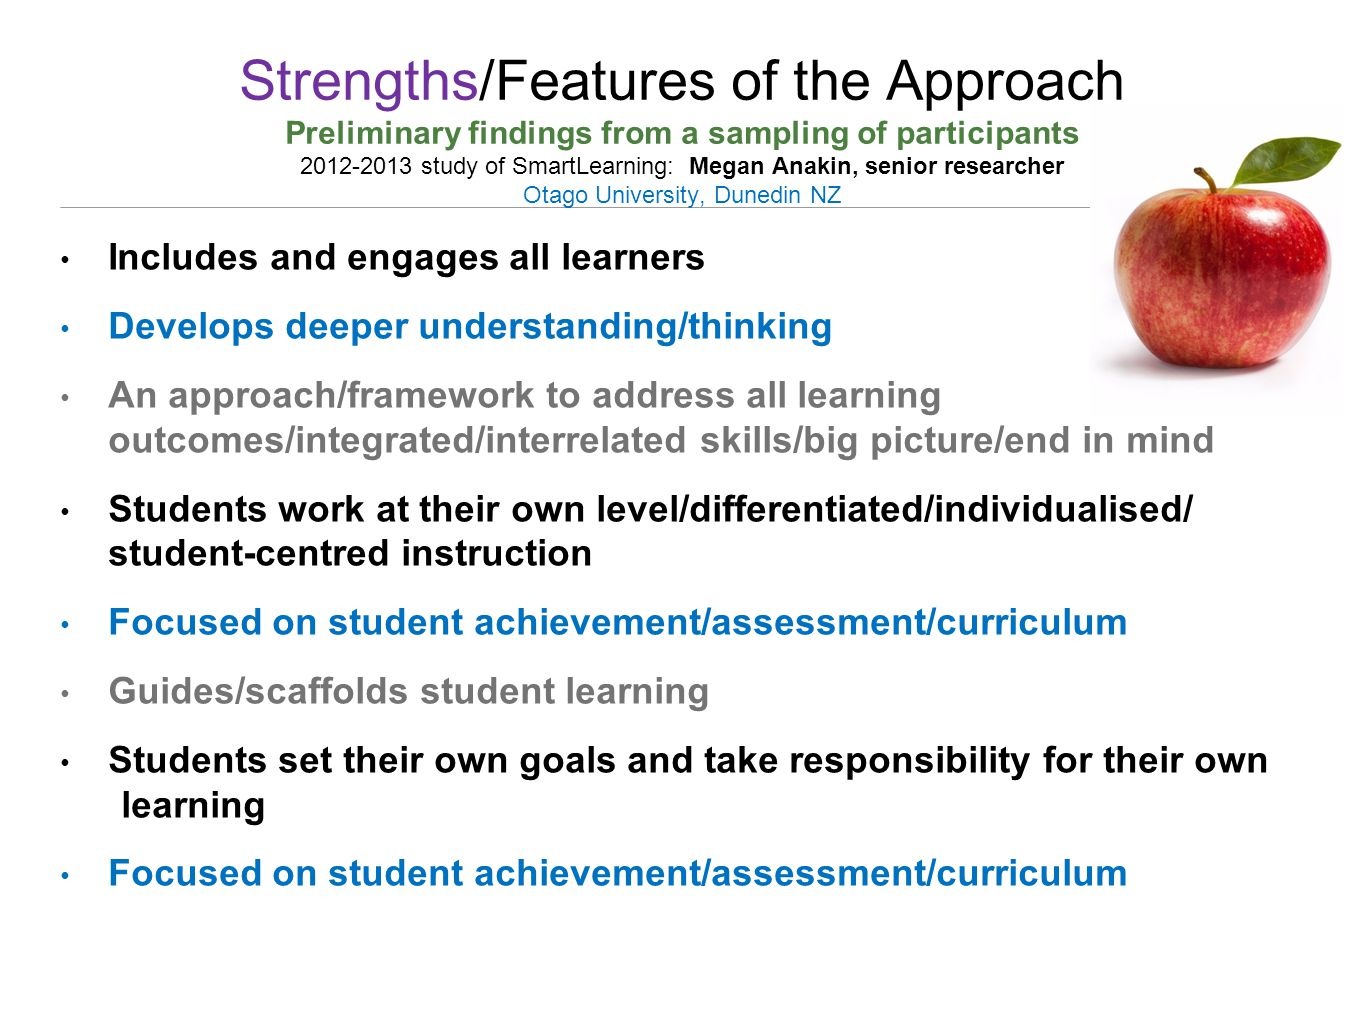 Strengths/Features of the Approach Preliminary findings from a sampling of participants 2012-2013 study of SmartLearning: Megan Anakin, senior researcher Otago University, Dunedin NZ Includes and engages all learners Develops deeper understanding/thinking An approach/framework to address all learning outcomes/integrated/interrelated skills/big picture/end in mind Students work at their own level/differentiated/individualised/ student-centred instruction Focused on student achievement/assessment/curriculum Guides/scaffolds student learning Students set their own goals and take responsibility for their own learning Focused on student achievement/assessment/curriculum